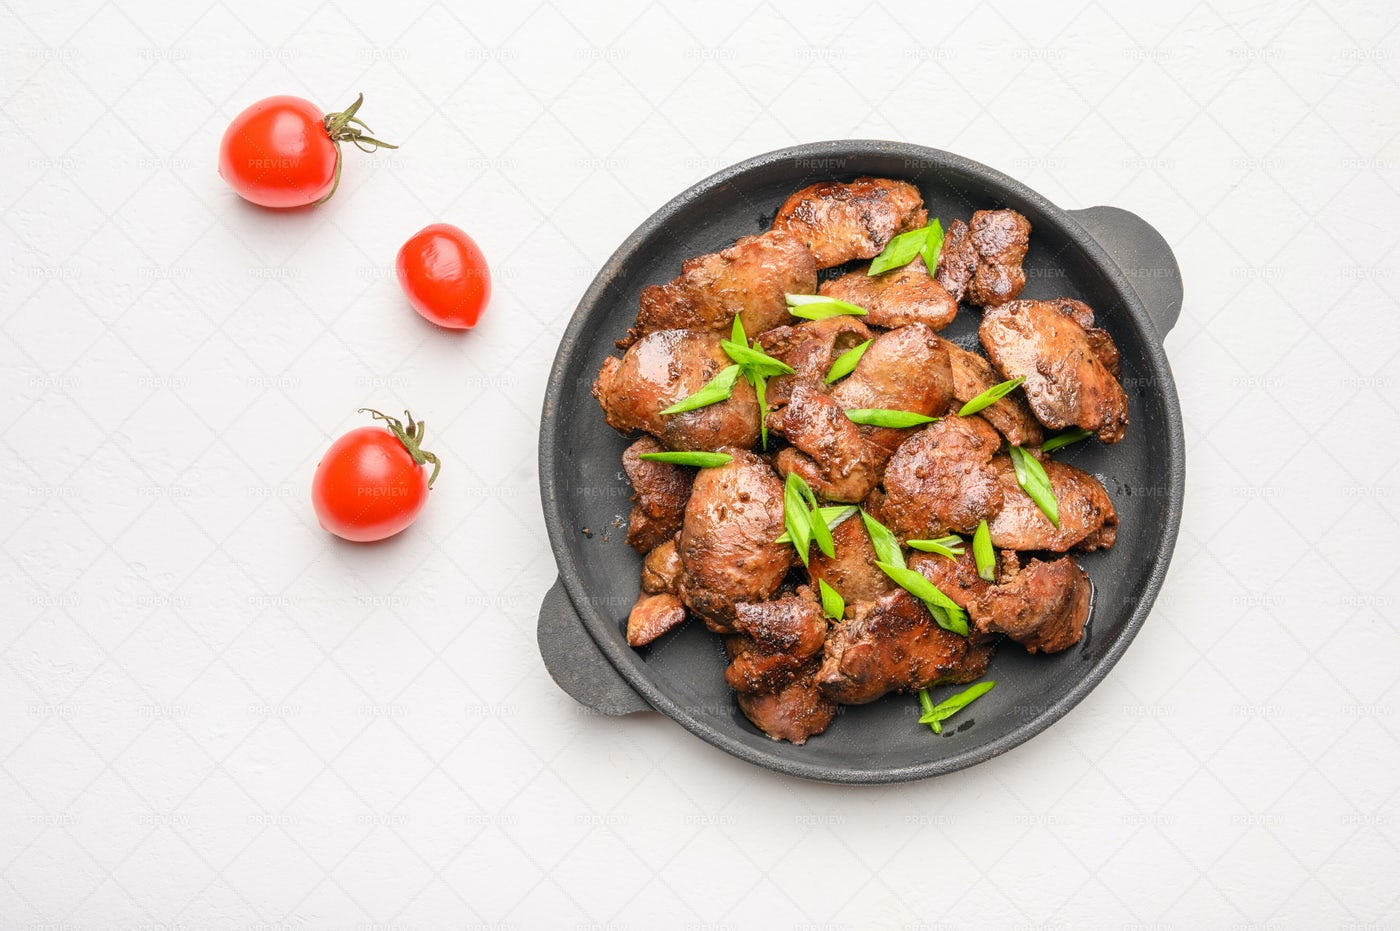 Chicken Dish And Tomatoes: Stock Photos